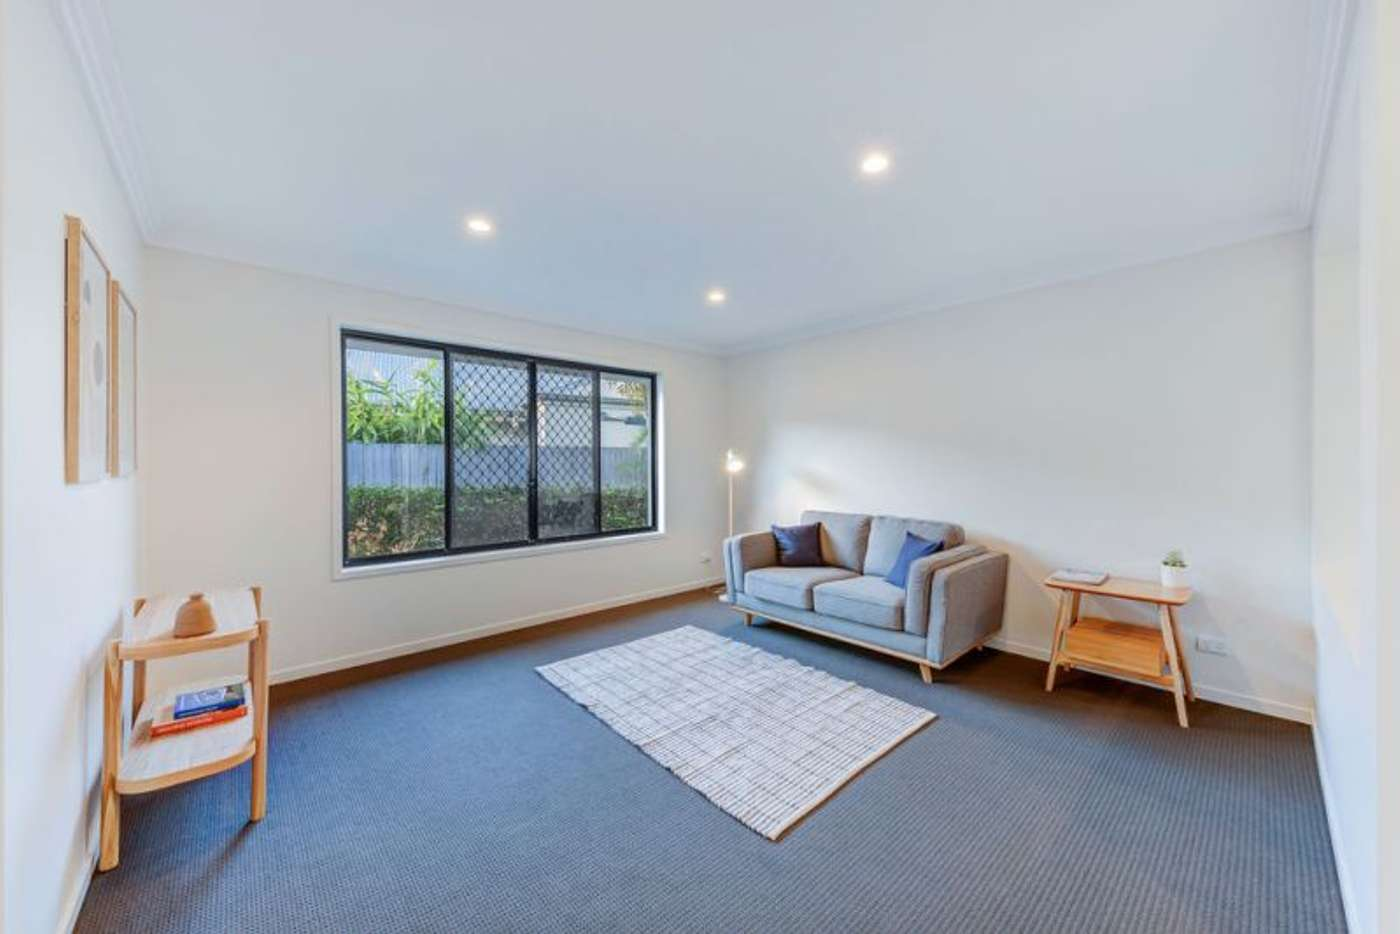 Sixth view of Homely house listing, 10 Dornoch Way, Peregian Springs QLD 4573